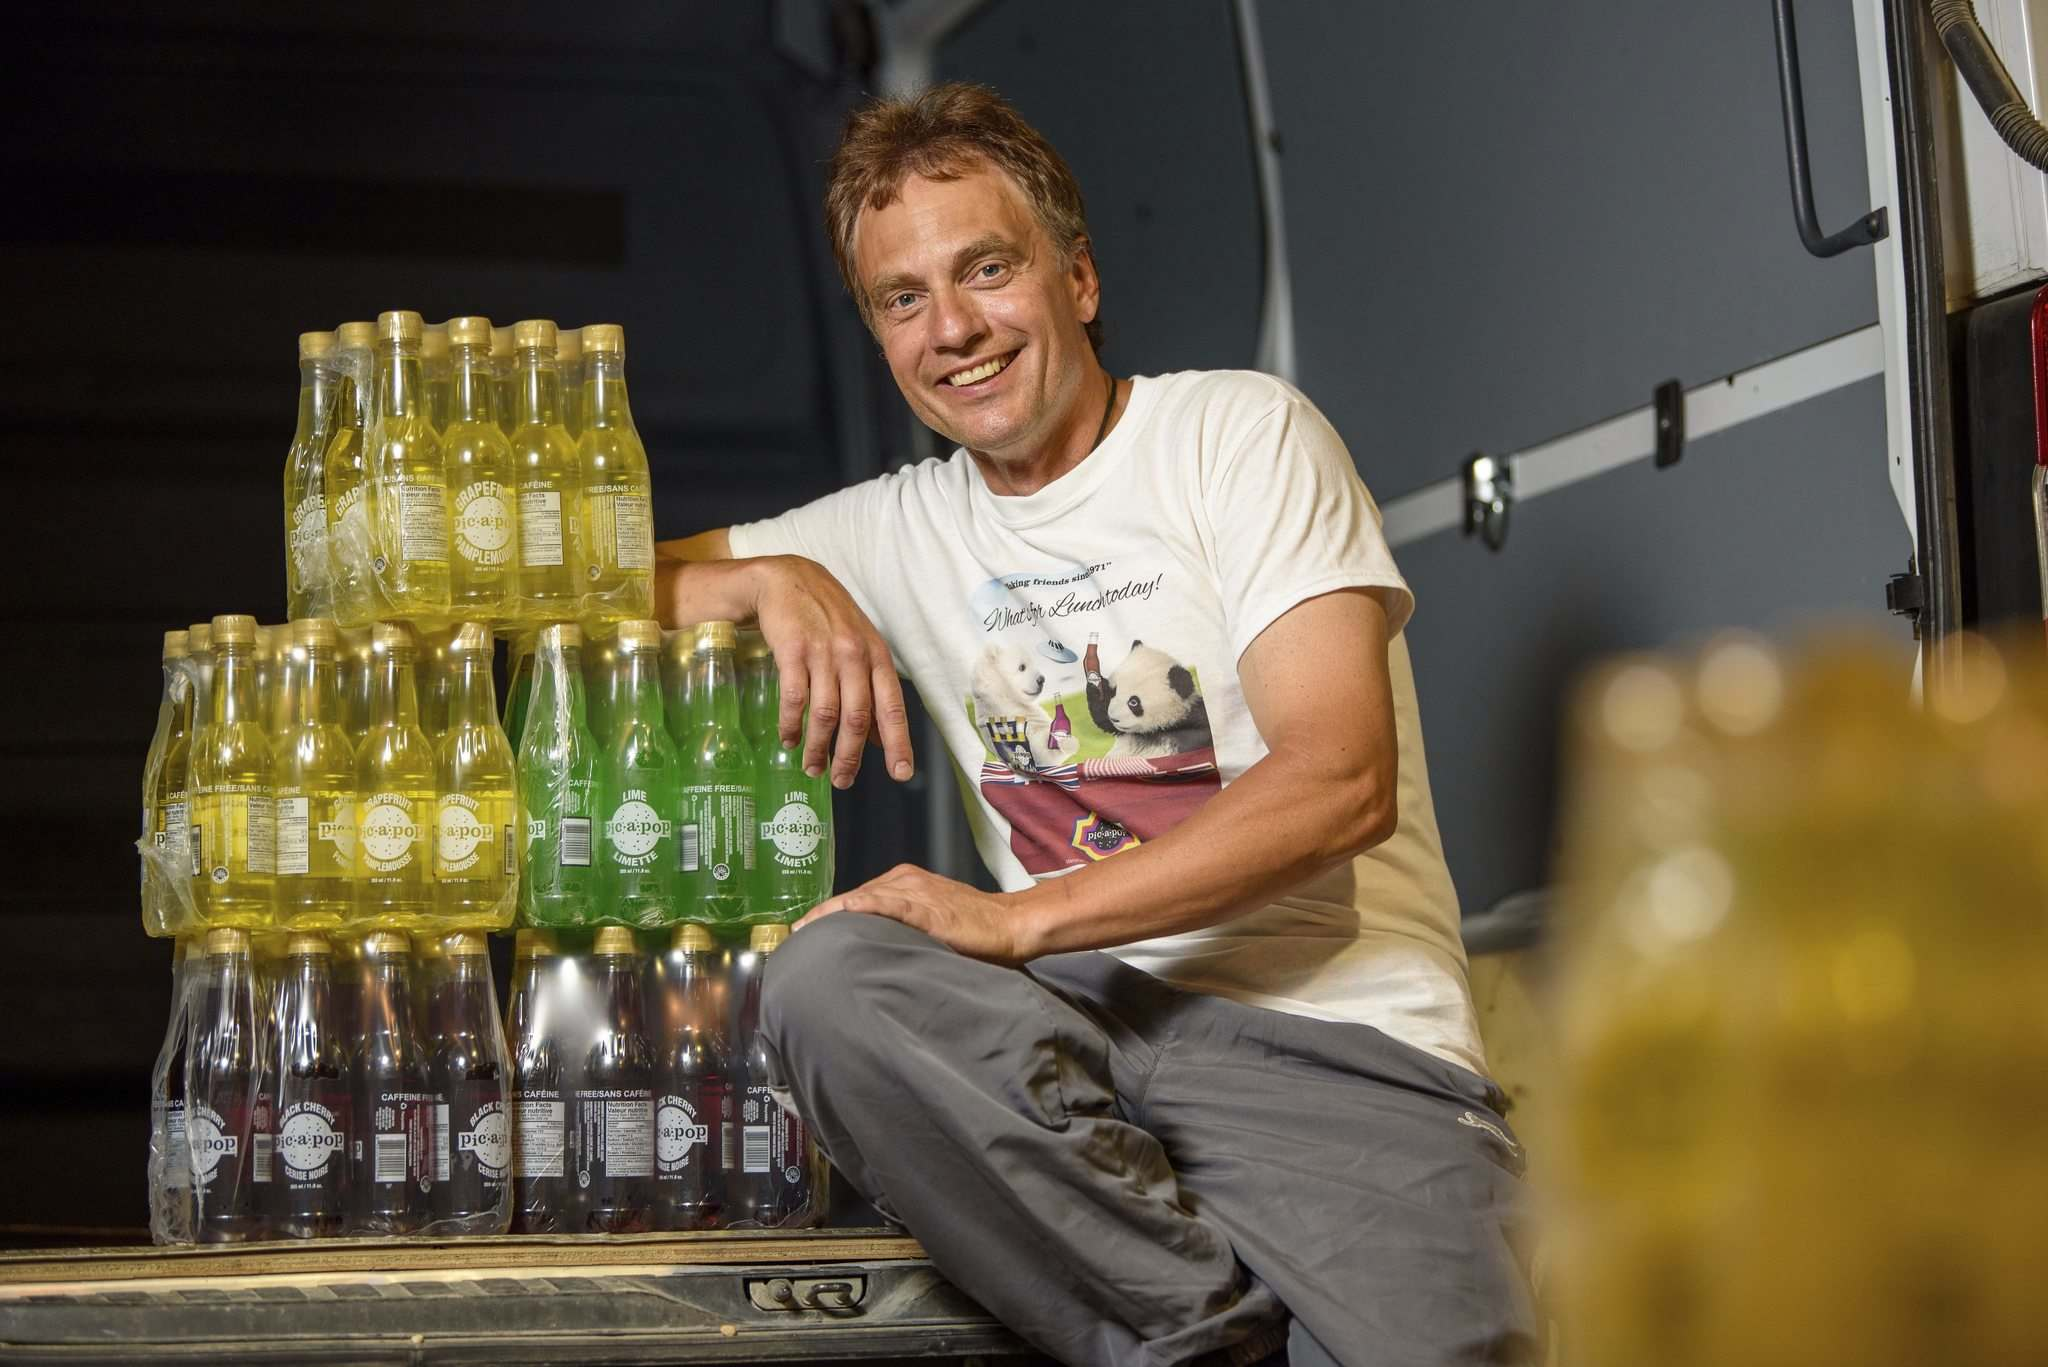 Michael Nykorak, the plant manager at Canadian Gold Beverages, with a stack of Pic-a-Pop. Canadian Gold uses the original formulas to produce classic Pic-a-Pop flavours. (Jesse Boily / Winnipeg Free Press)</p>